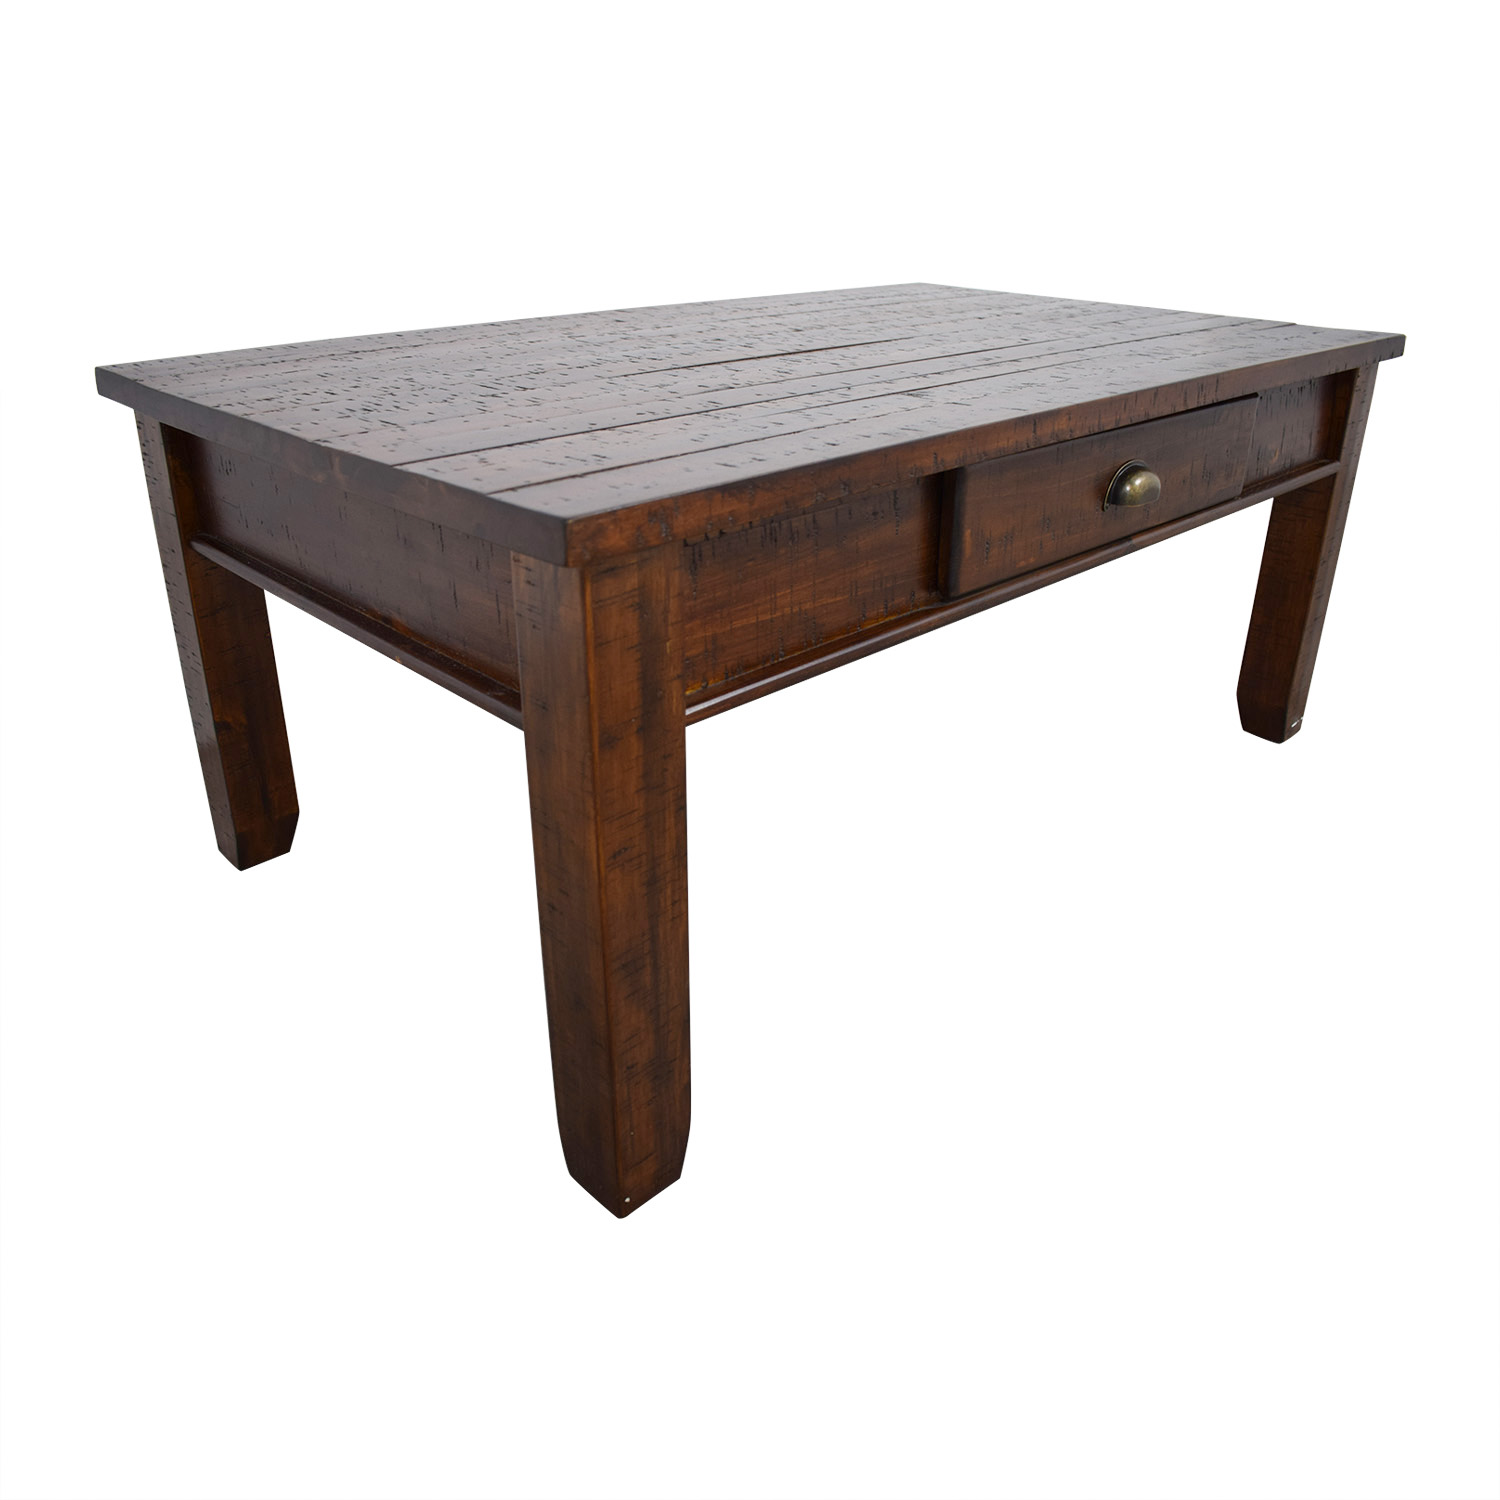 Raymour & Flanigan Raymour & Flanigan Urban Lodge Coffee Table nj